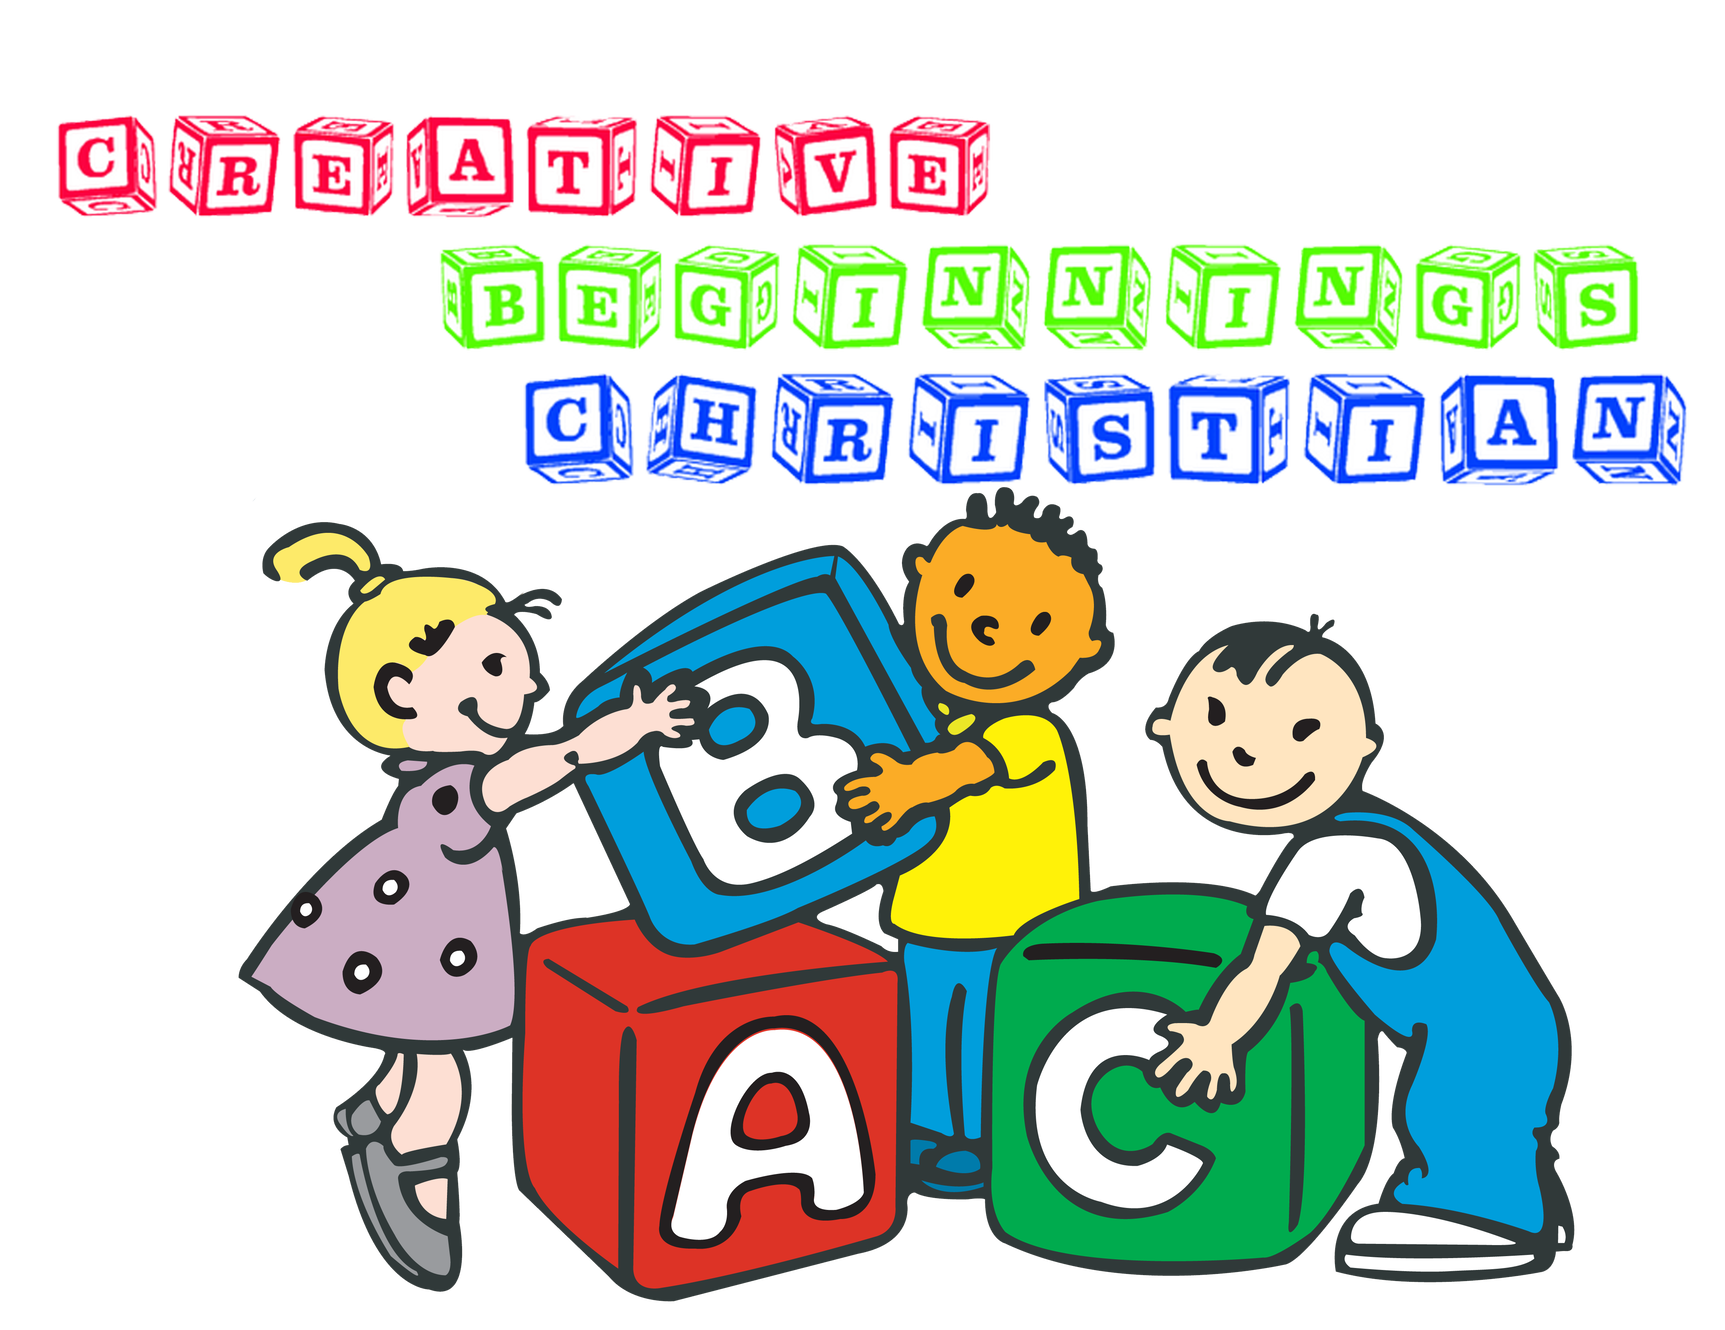 Daycare clipart creative child. Beginnings care columbia sc